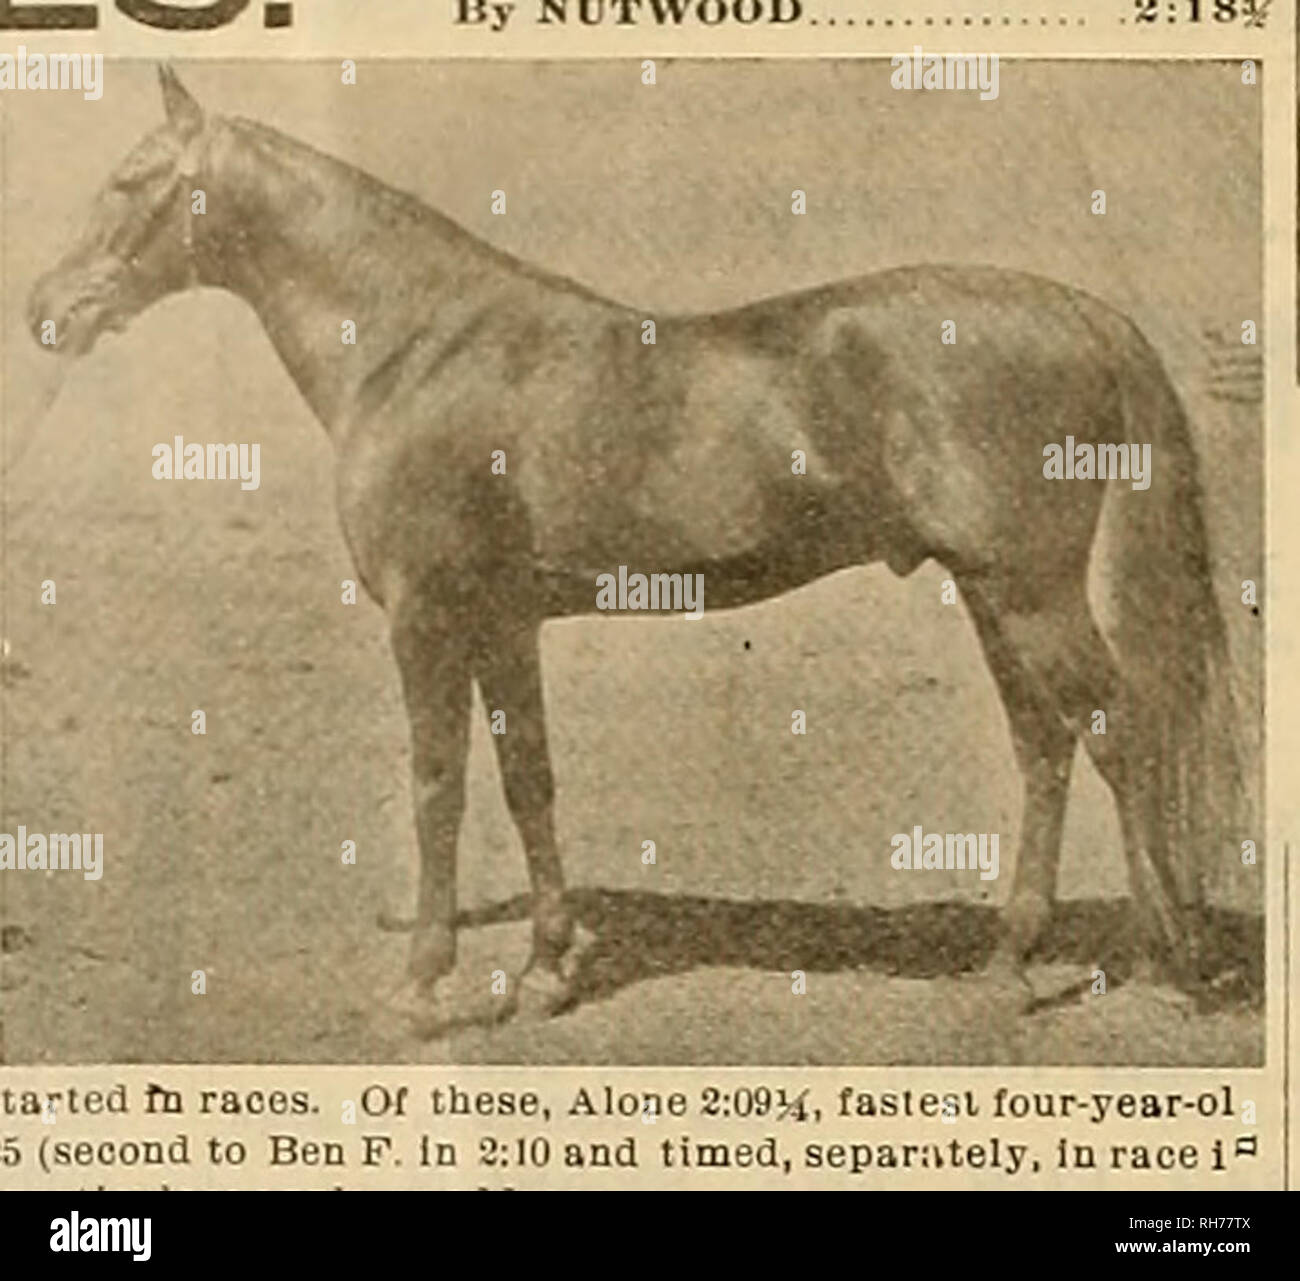 . Breeder and sportsman. Horses. 18 ©its ghrceocv cinit &povtamow [April 16, 1^04 THE CHAMPION SIRE OF EARLY AND EXTREME SPEED. NUTWOOD WILKES. g0 I, ar-olds in odo soason with Who in It, ex-champion three-year-old .1. in,  Hi Kerron 2:04»/, (2:12V Kblo be- fore removal of mare. Slock woll cared I ⢠pouiiiblllty u for accidents and escape?. â¦yButfourorflveof thograndsot, daughters of NUTWOOD WILKES ever started fn races. Of these, Alon ..A Caroline L. loilo 2:15 and Miss Georgia 2:25 (second to Beo F. in 0:10 and ?:09) aro out of bis daughters Xonog si.uk by Nutwood Wilkes for sale. F - Stock Image